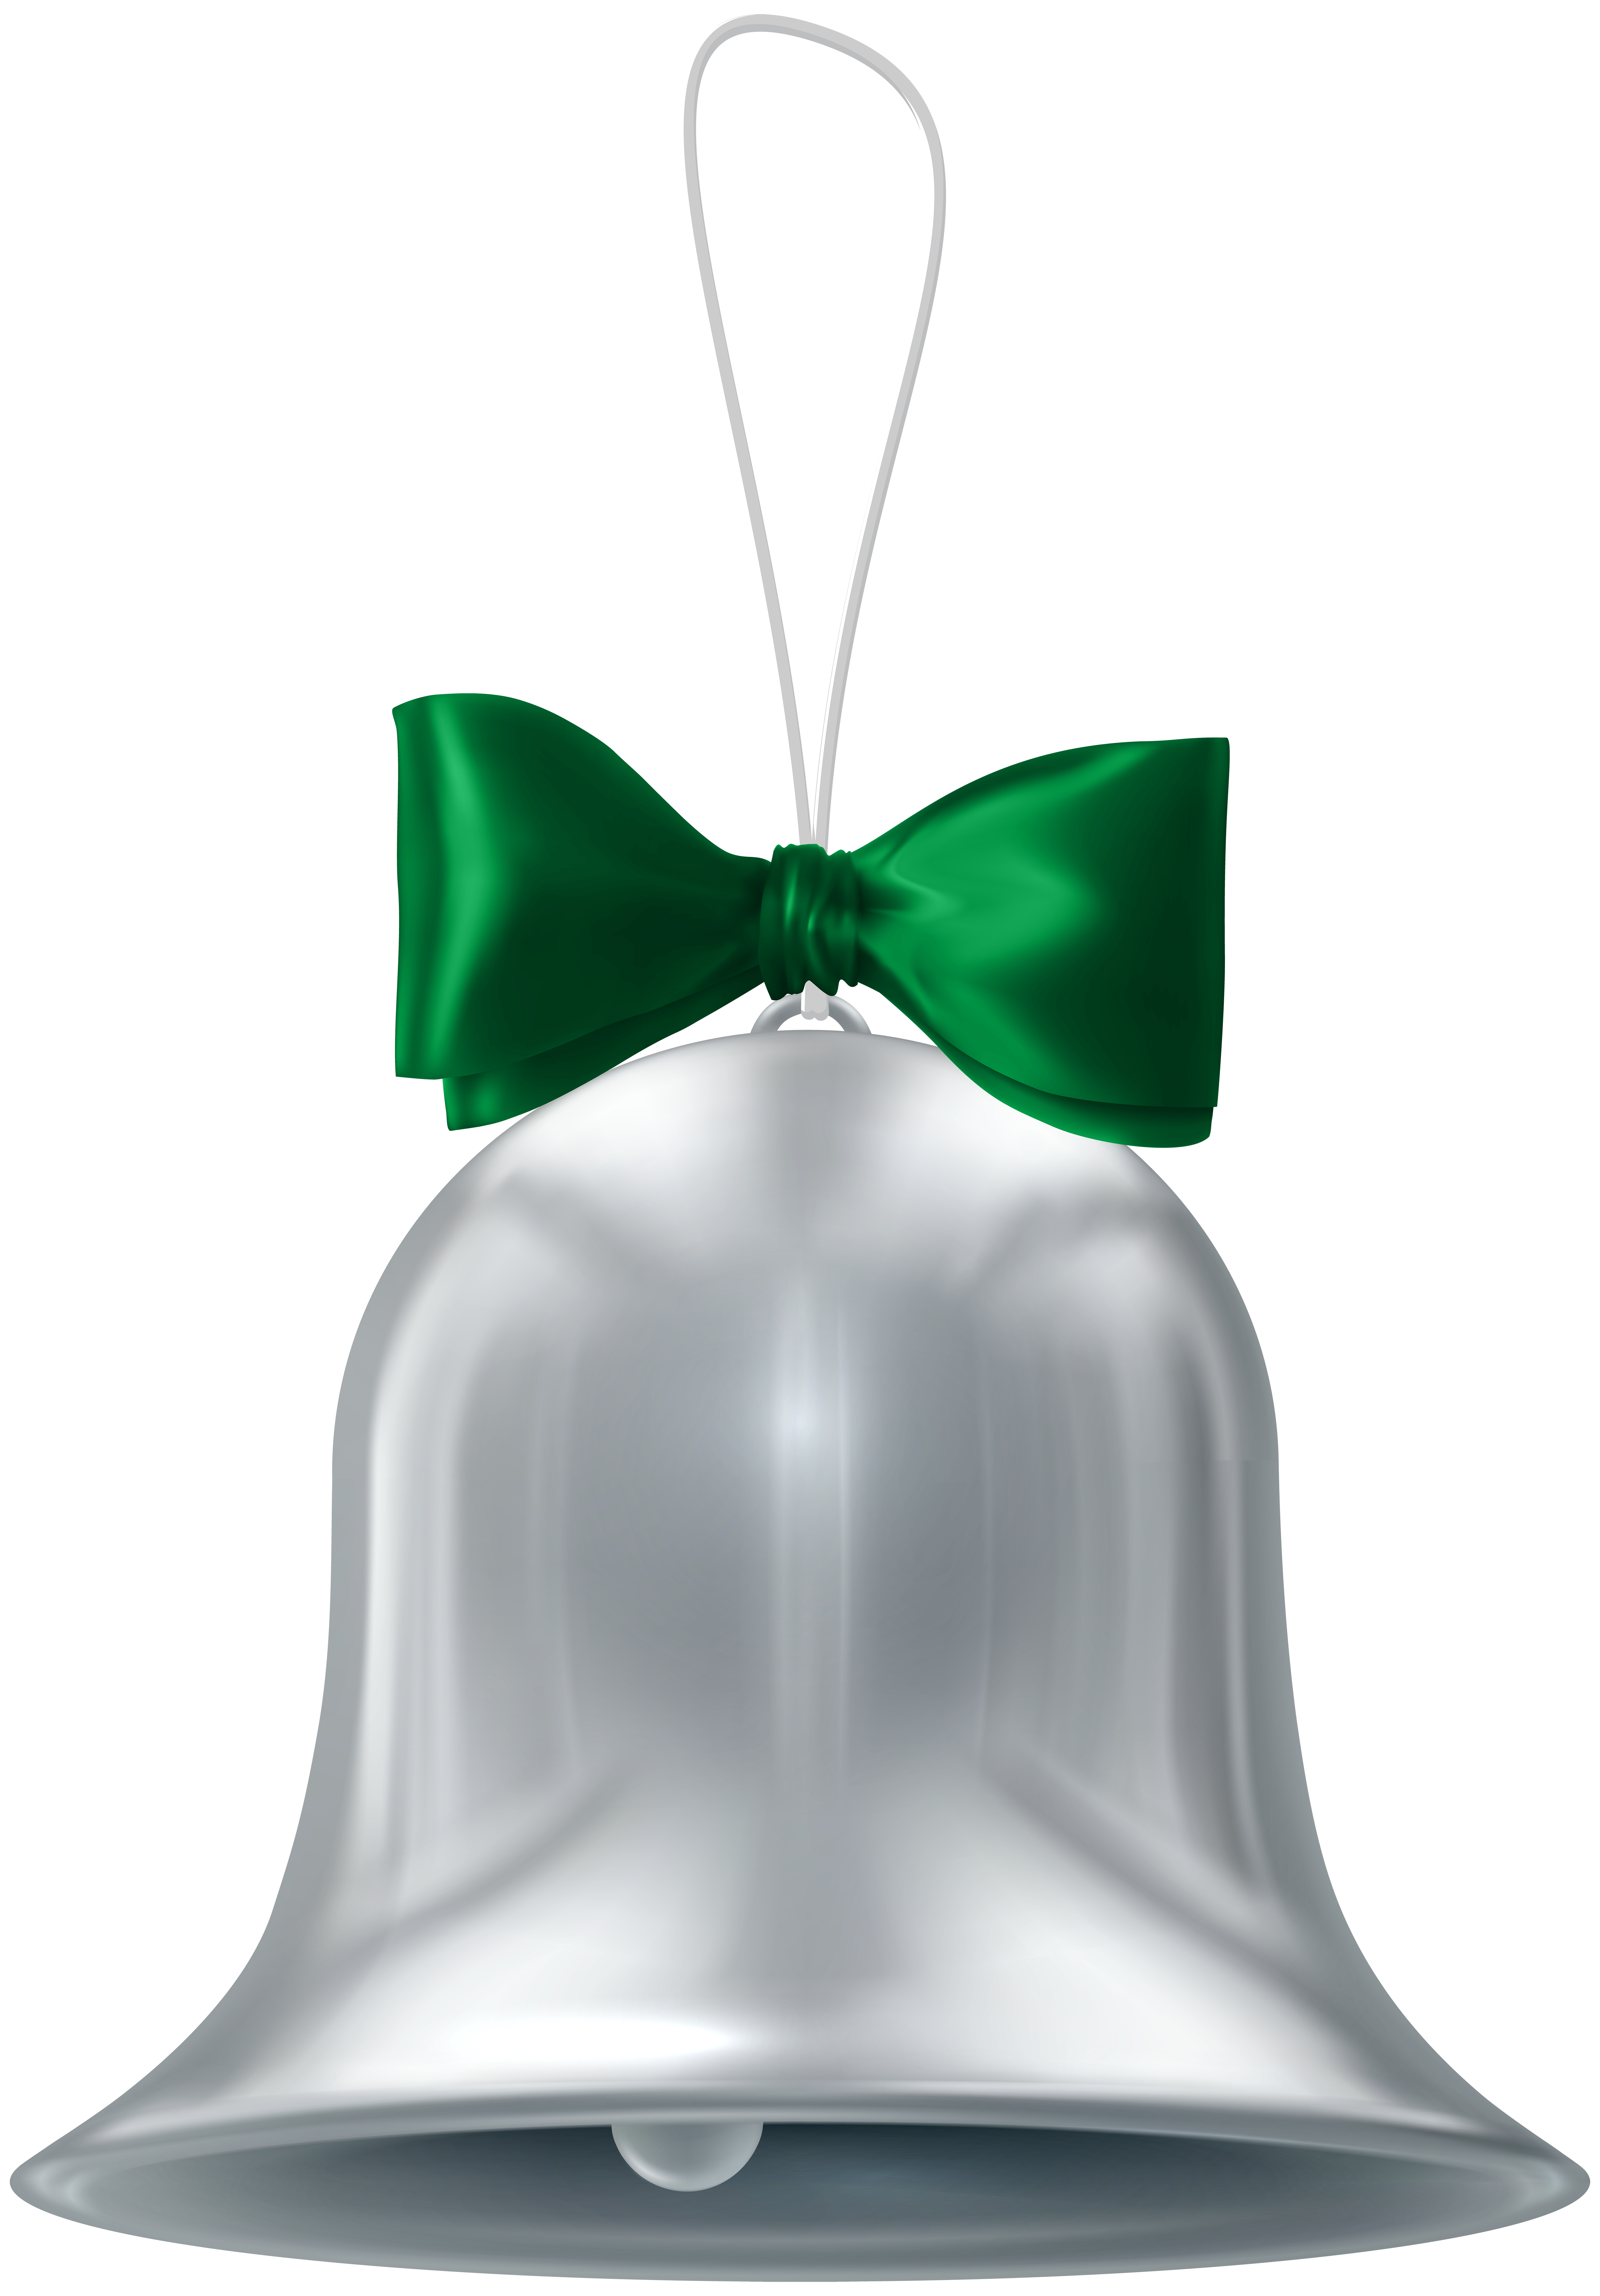 Gray bell png. Christmas silver transparent clip